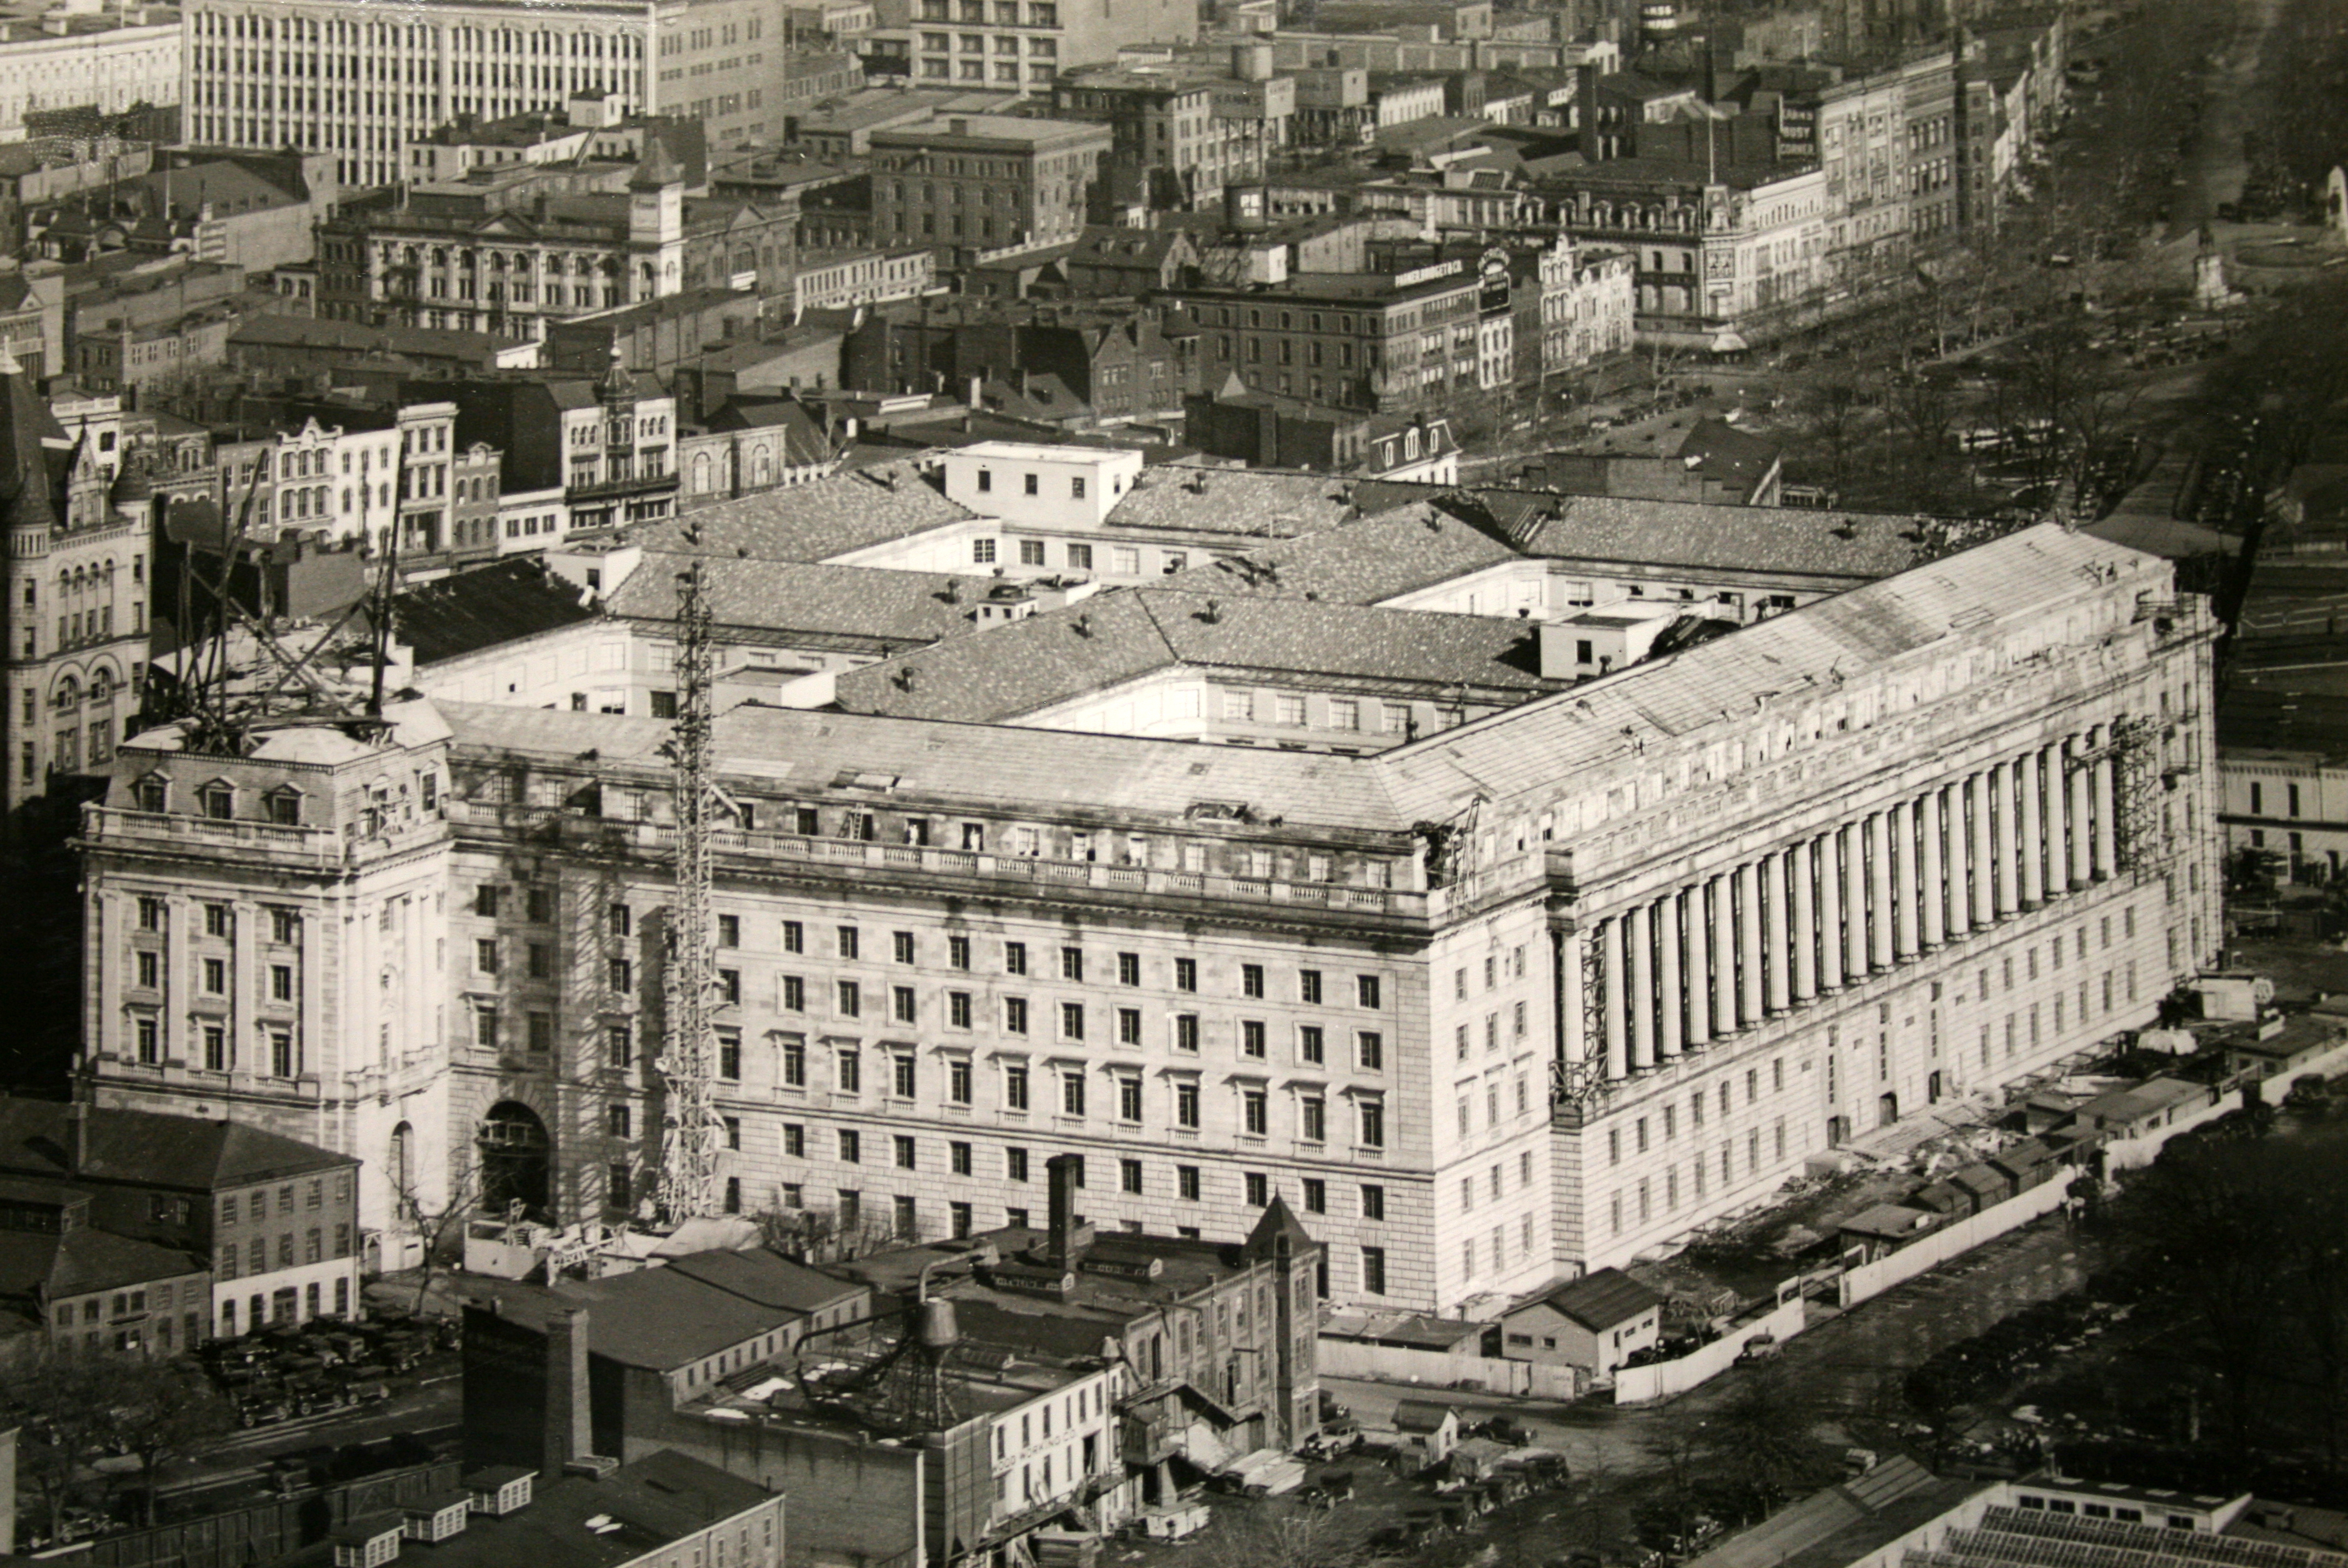 Aerial photograph of the building during the final stages of construction, c. 1930.